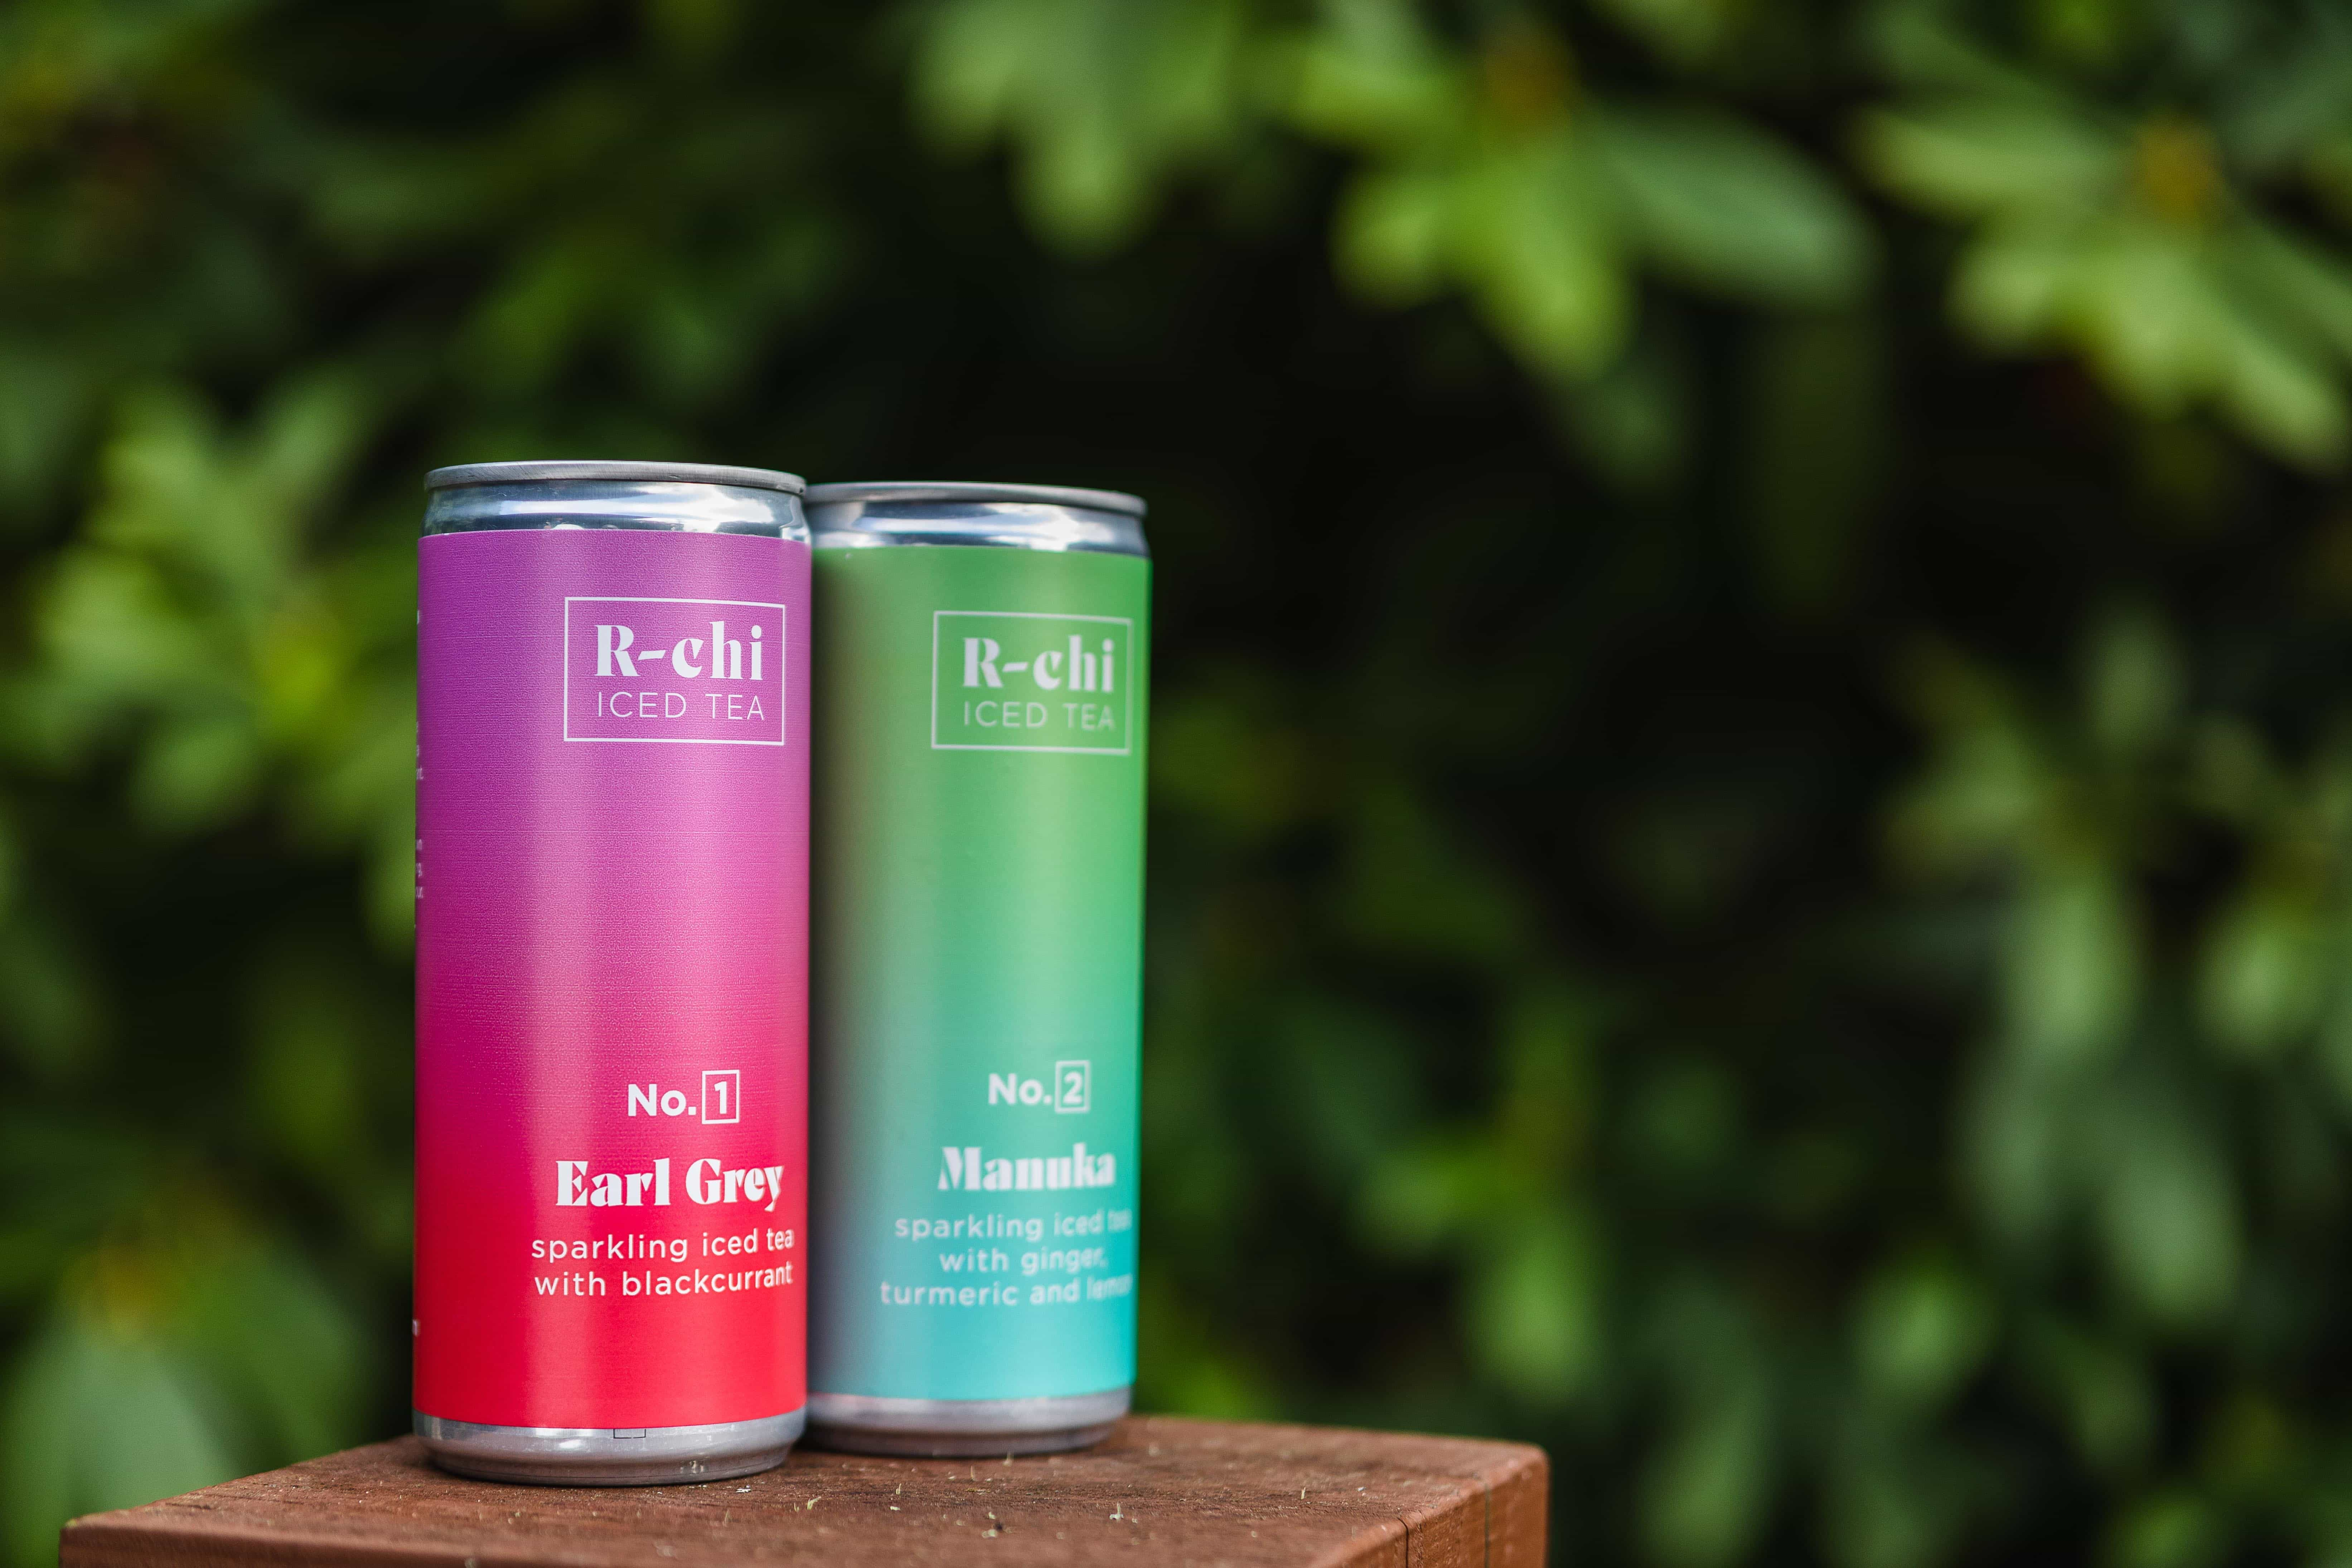 R-chi Iced tea Mixed case on a podium flavour. Brewed in Cornwall by Archie Boscawen. Pink and green drinks cans.